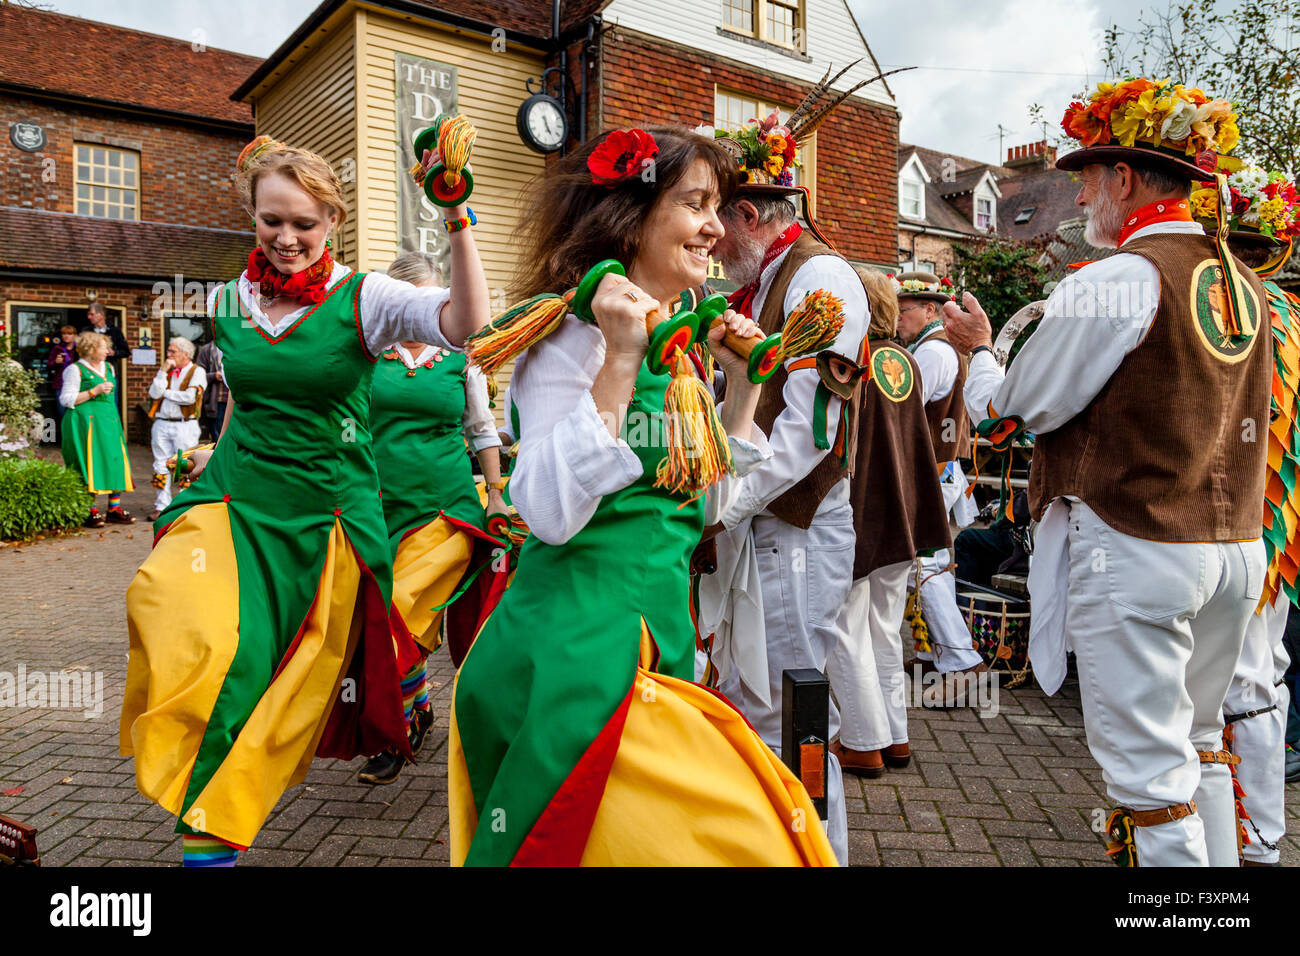 Chelmsford Ladies Morris Dancers Perform Outside The Dorset Arms Pub In Lewes During The Annual Folk Festival, Lewes, - Stock Image